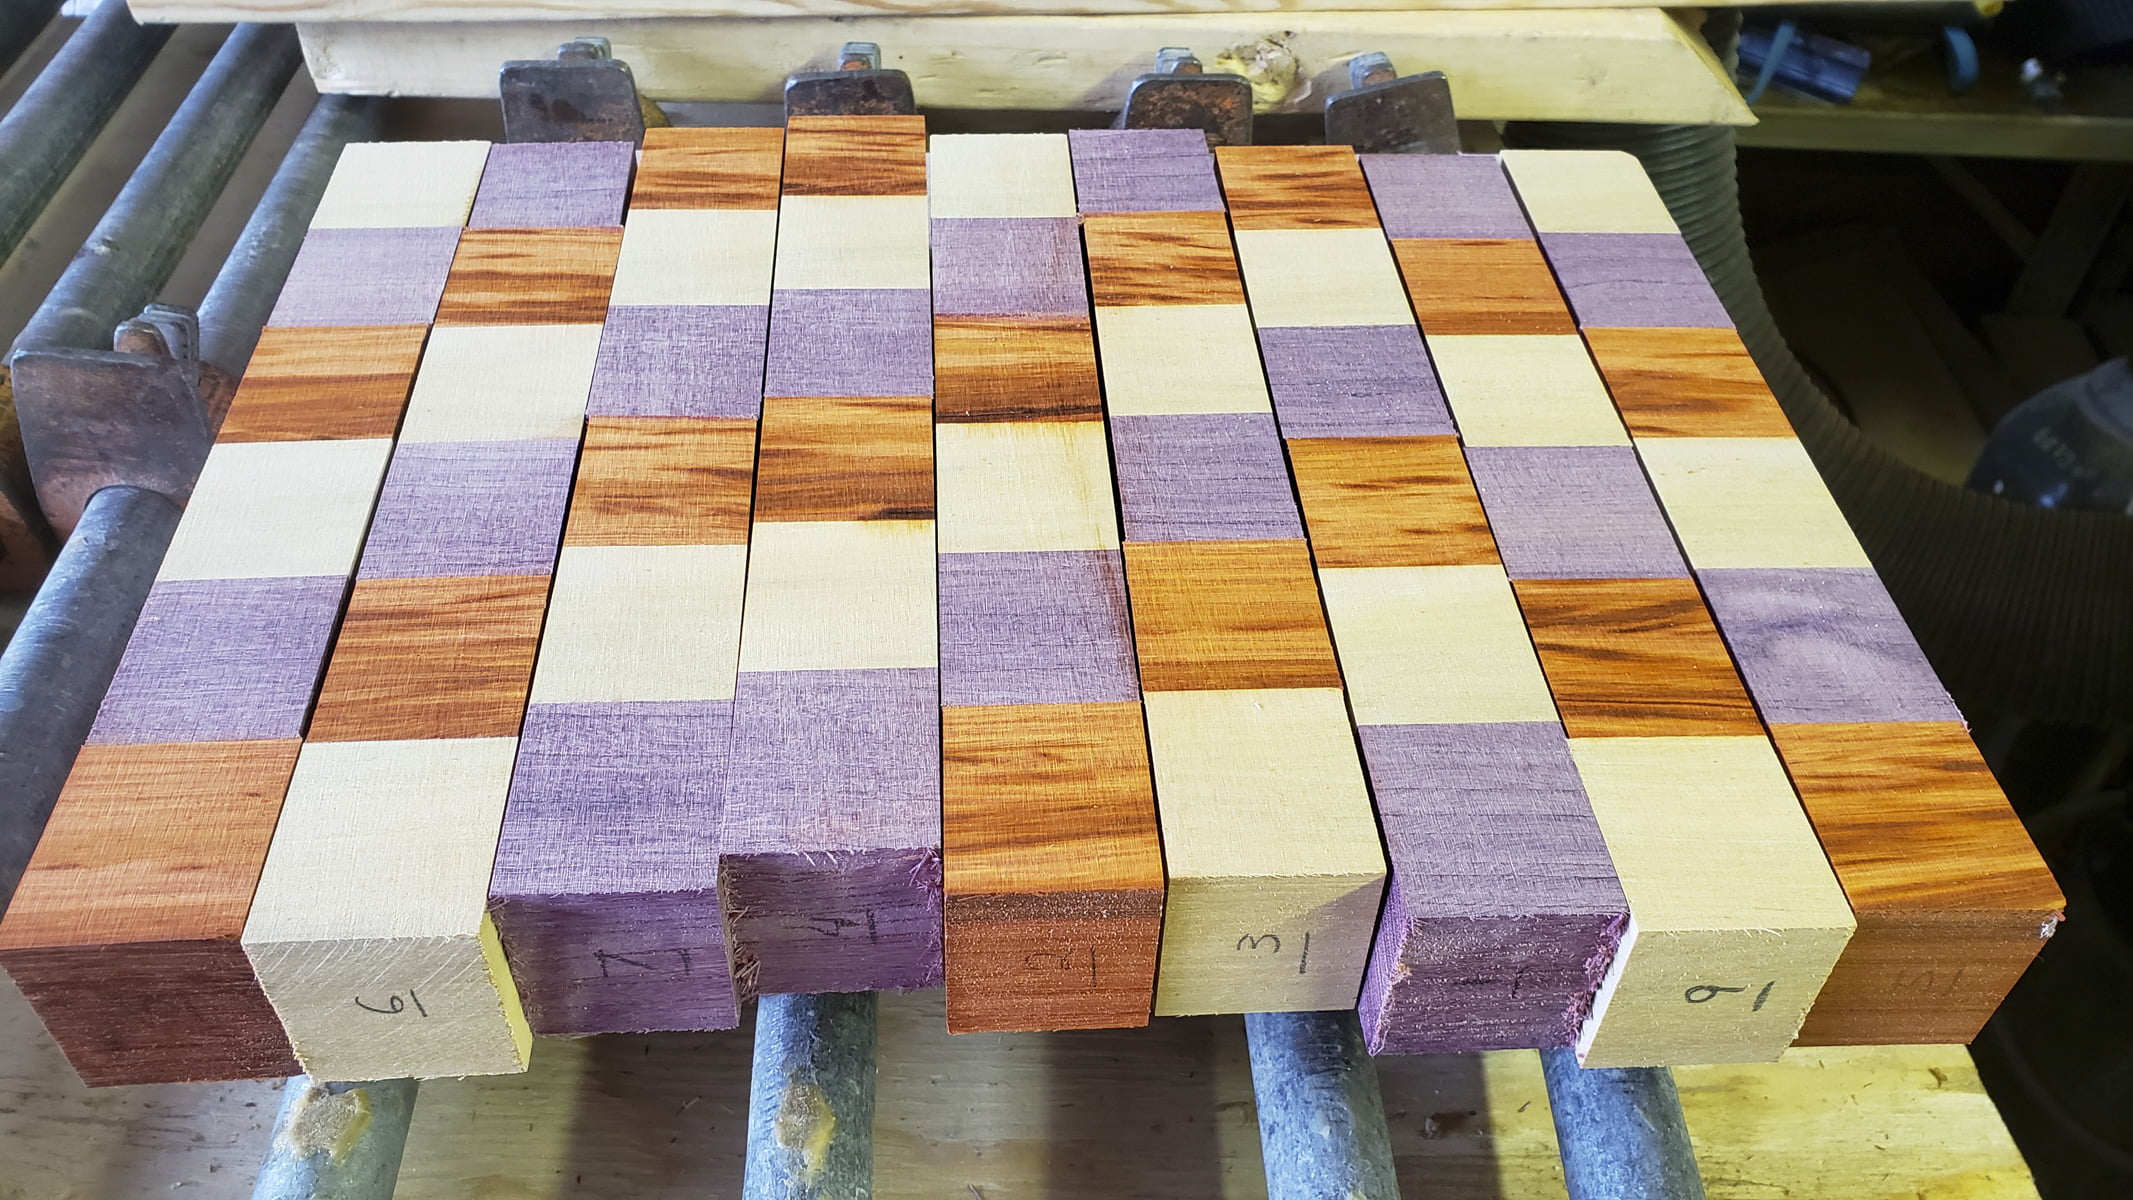 Several strips of wood, comprised of smaller cubes, are seen on a table. Each strip has been sanded to have flat sides.